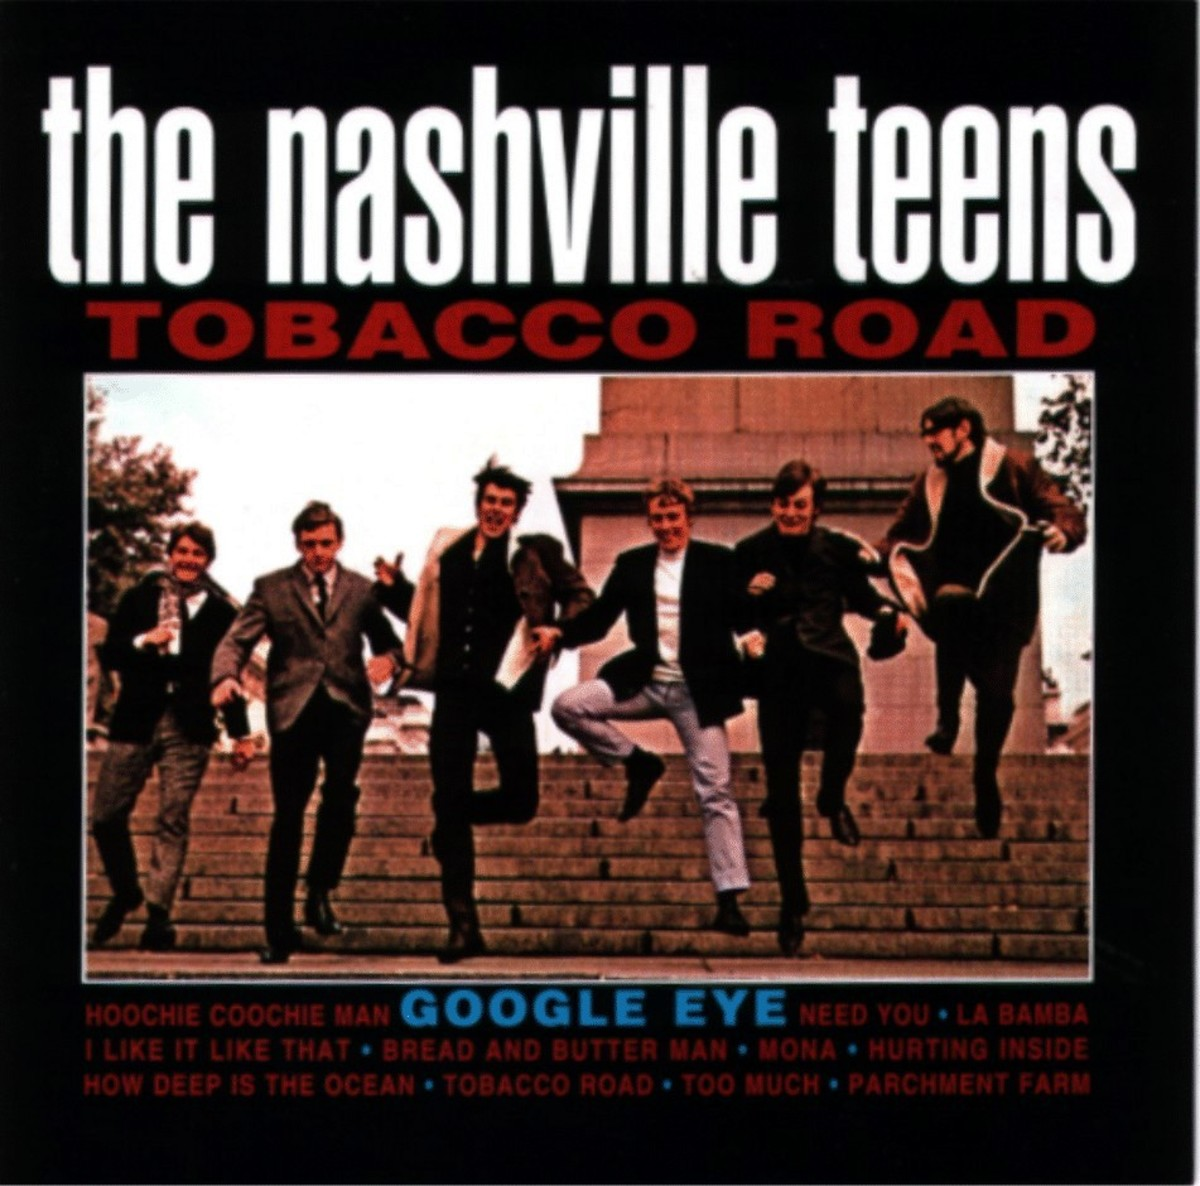 Tobacco Road by The Nashville Teens